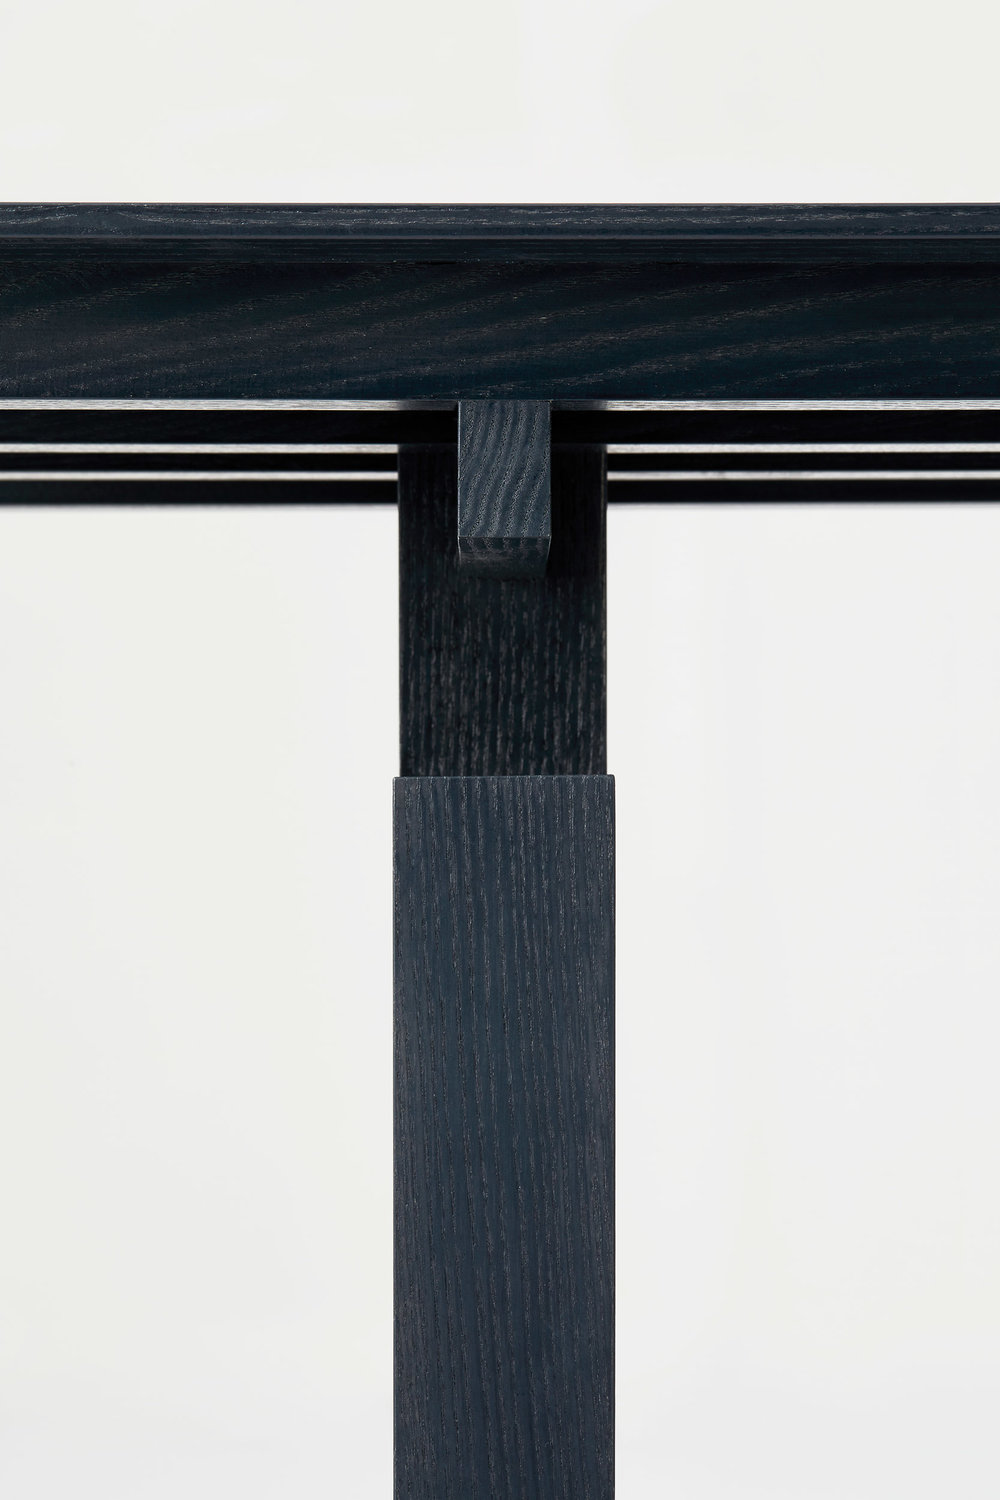 Studio-Pascal-Howe_Covered-Identity-Side-Table_details03_web.jpg